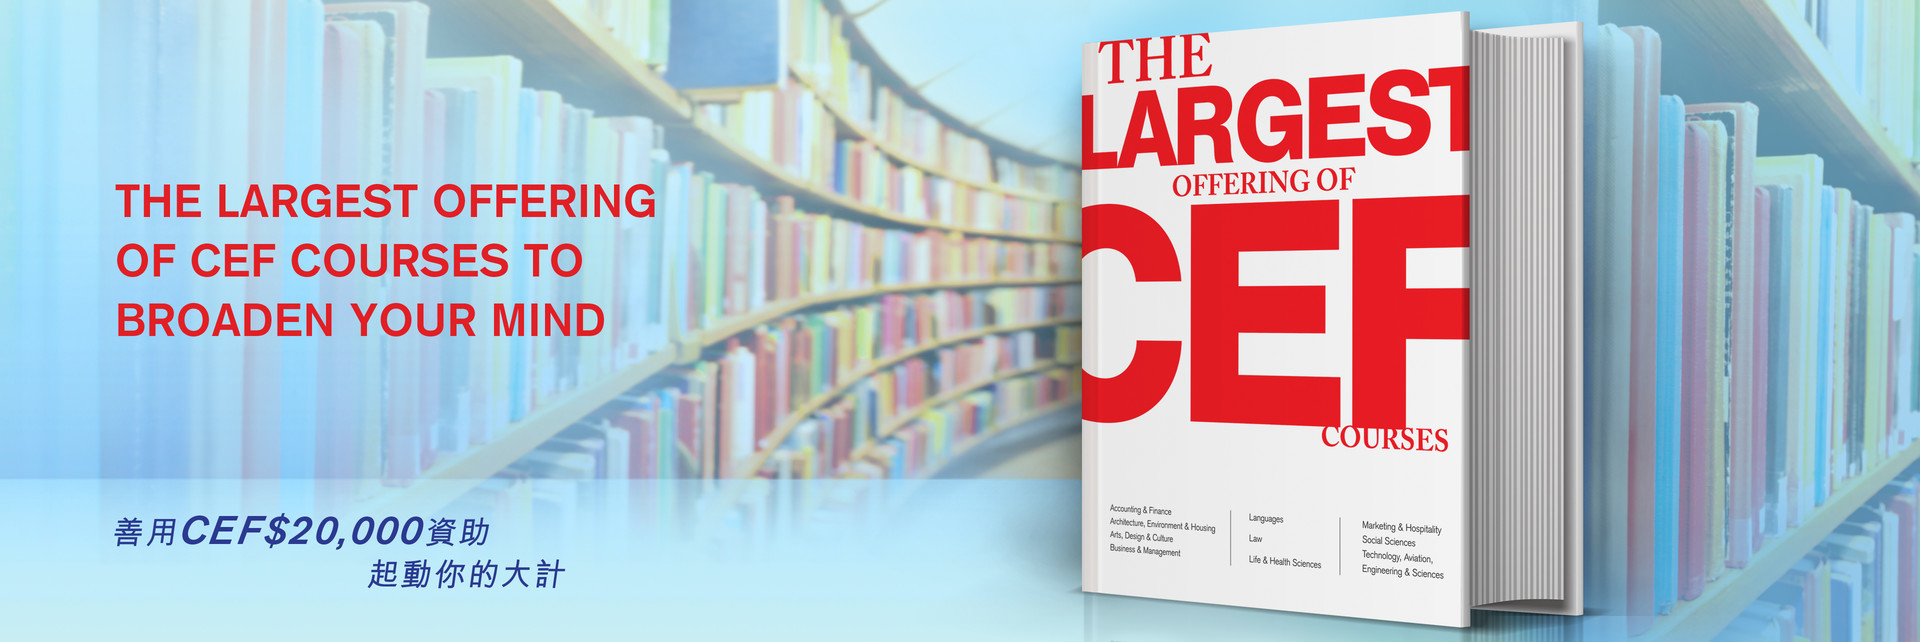 The largest offering of CEF courses